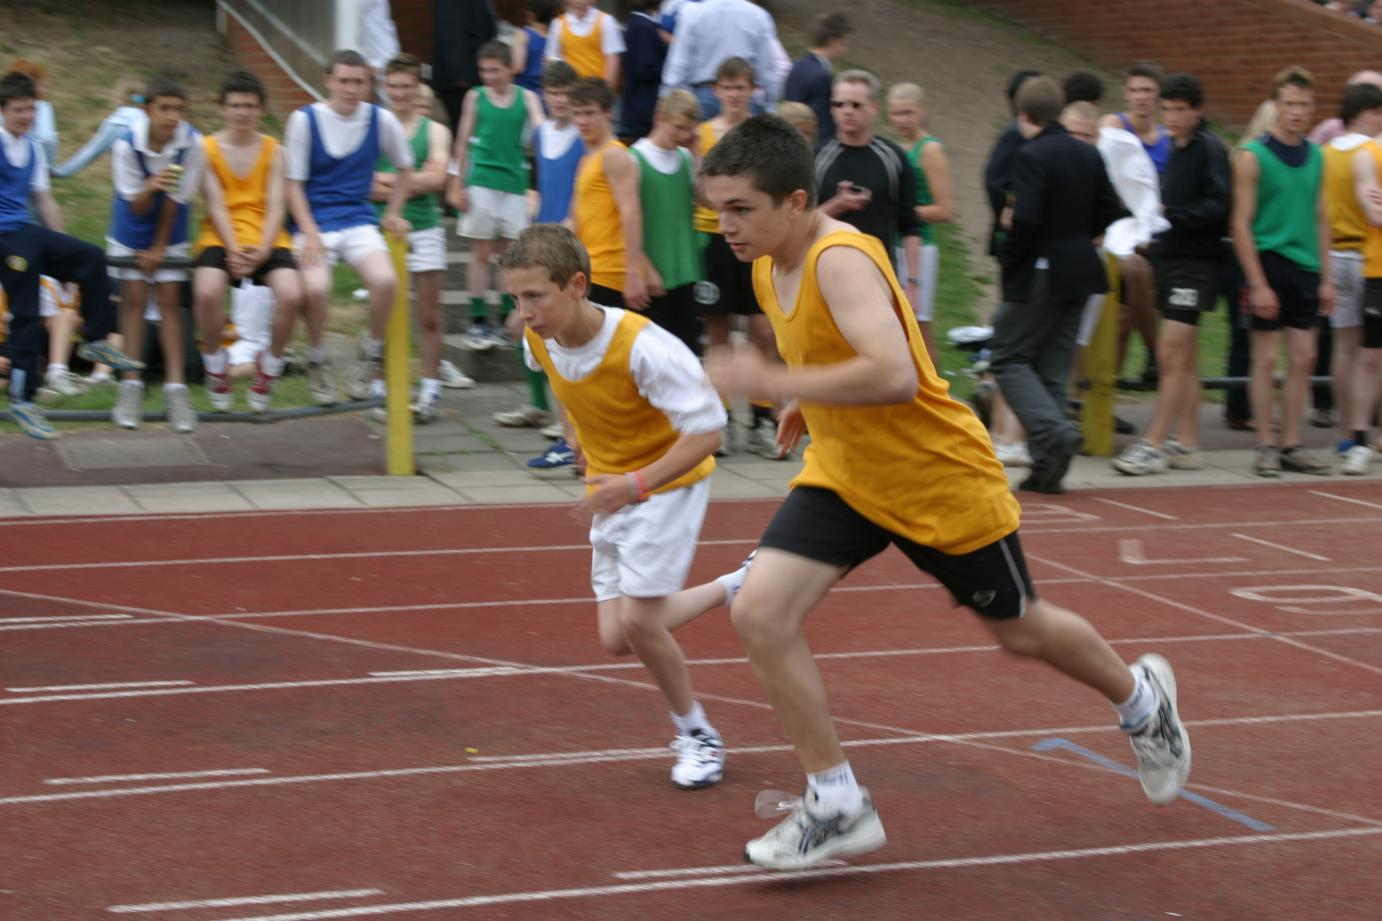 Sam Booth & Josh Gilmore-Jones Sports Day 2005.JPG